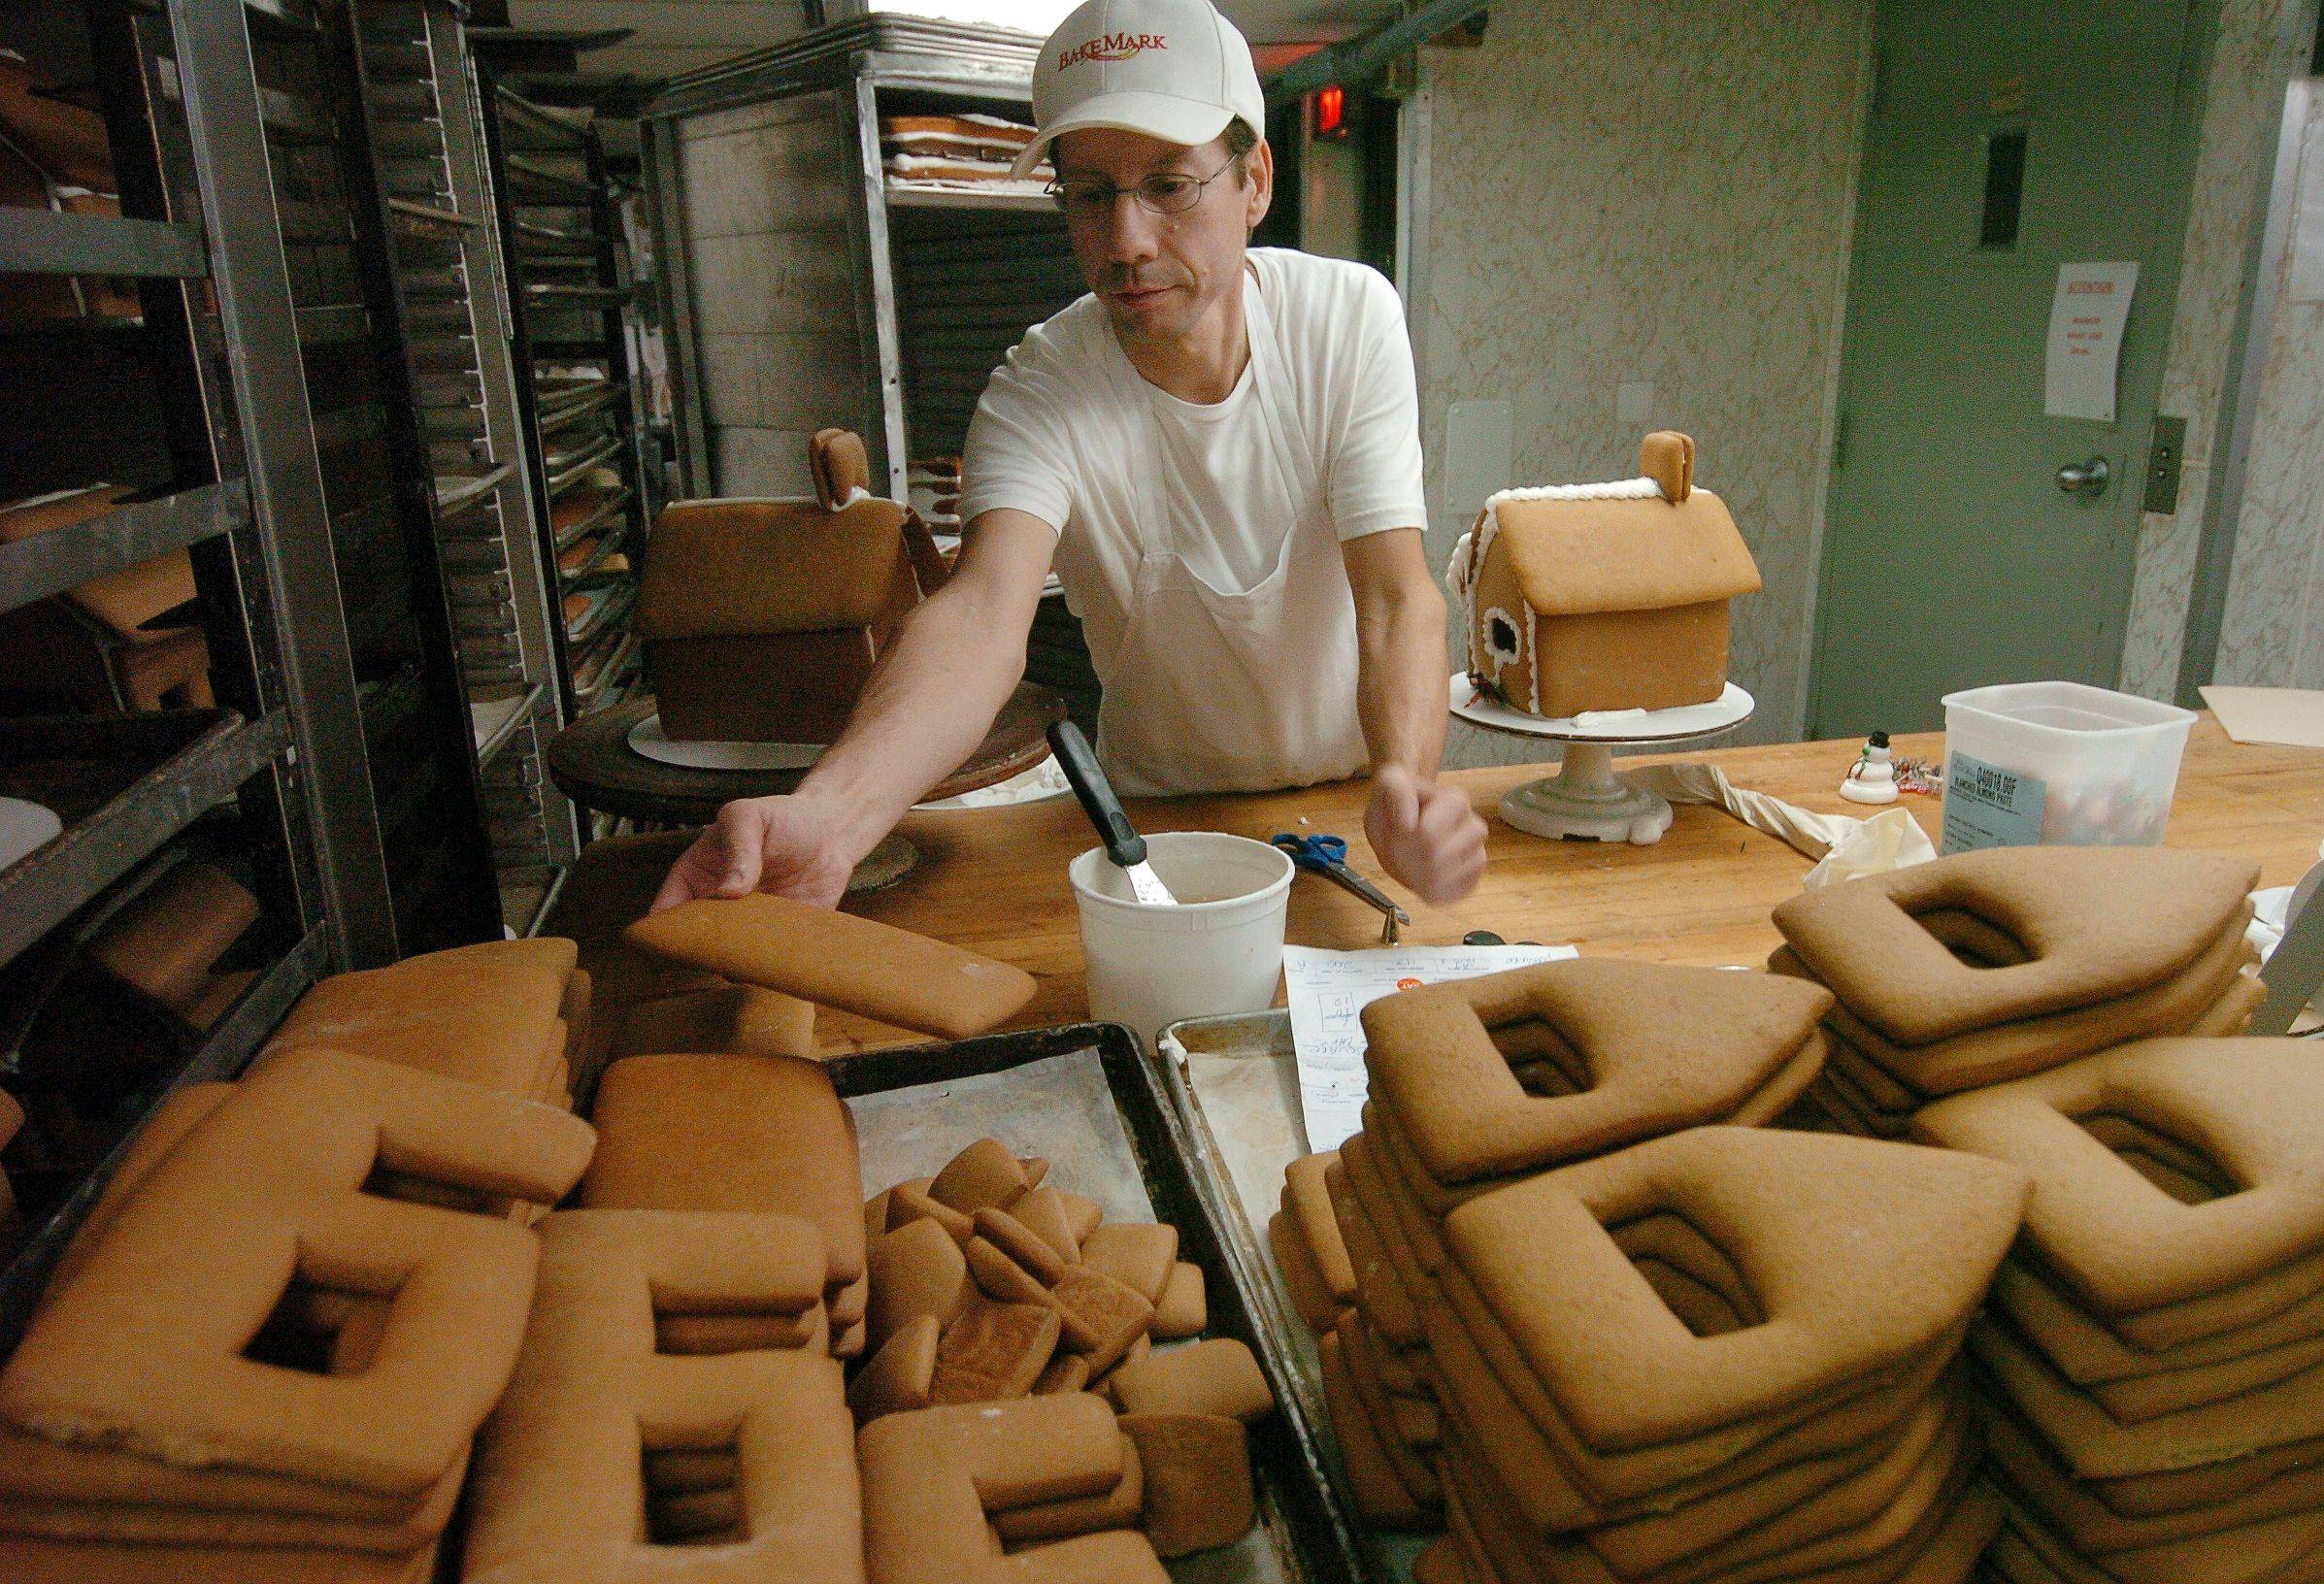 Images: Behind the Scenes at Central Continental Bakery in Mount Prospect